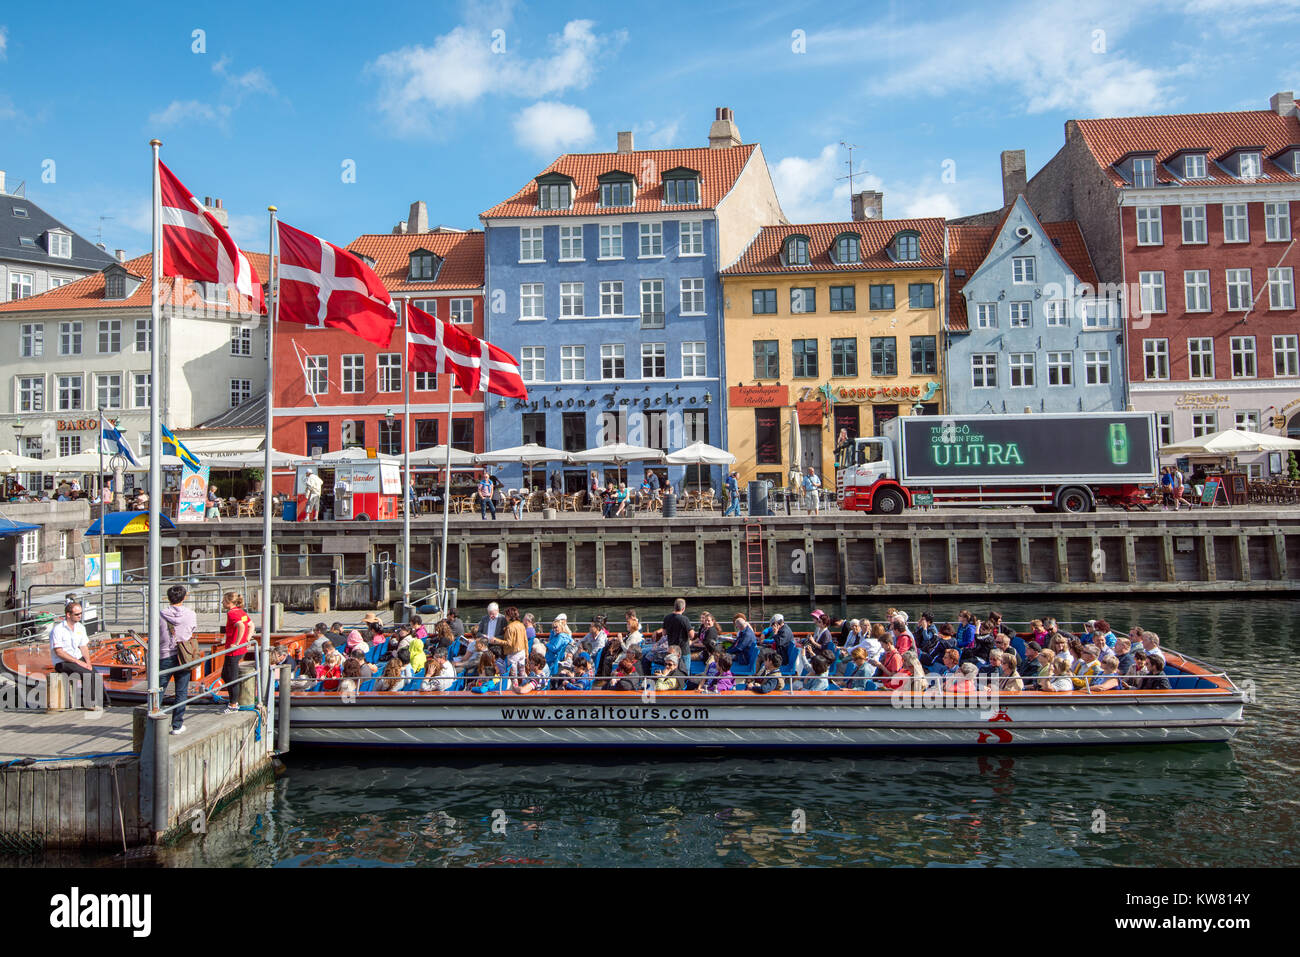 Tour boat in Nyhavn, a 17th century harbor district in the center of Copenhagen and currently a popular tourist - Stock Image